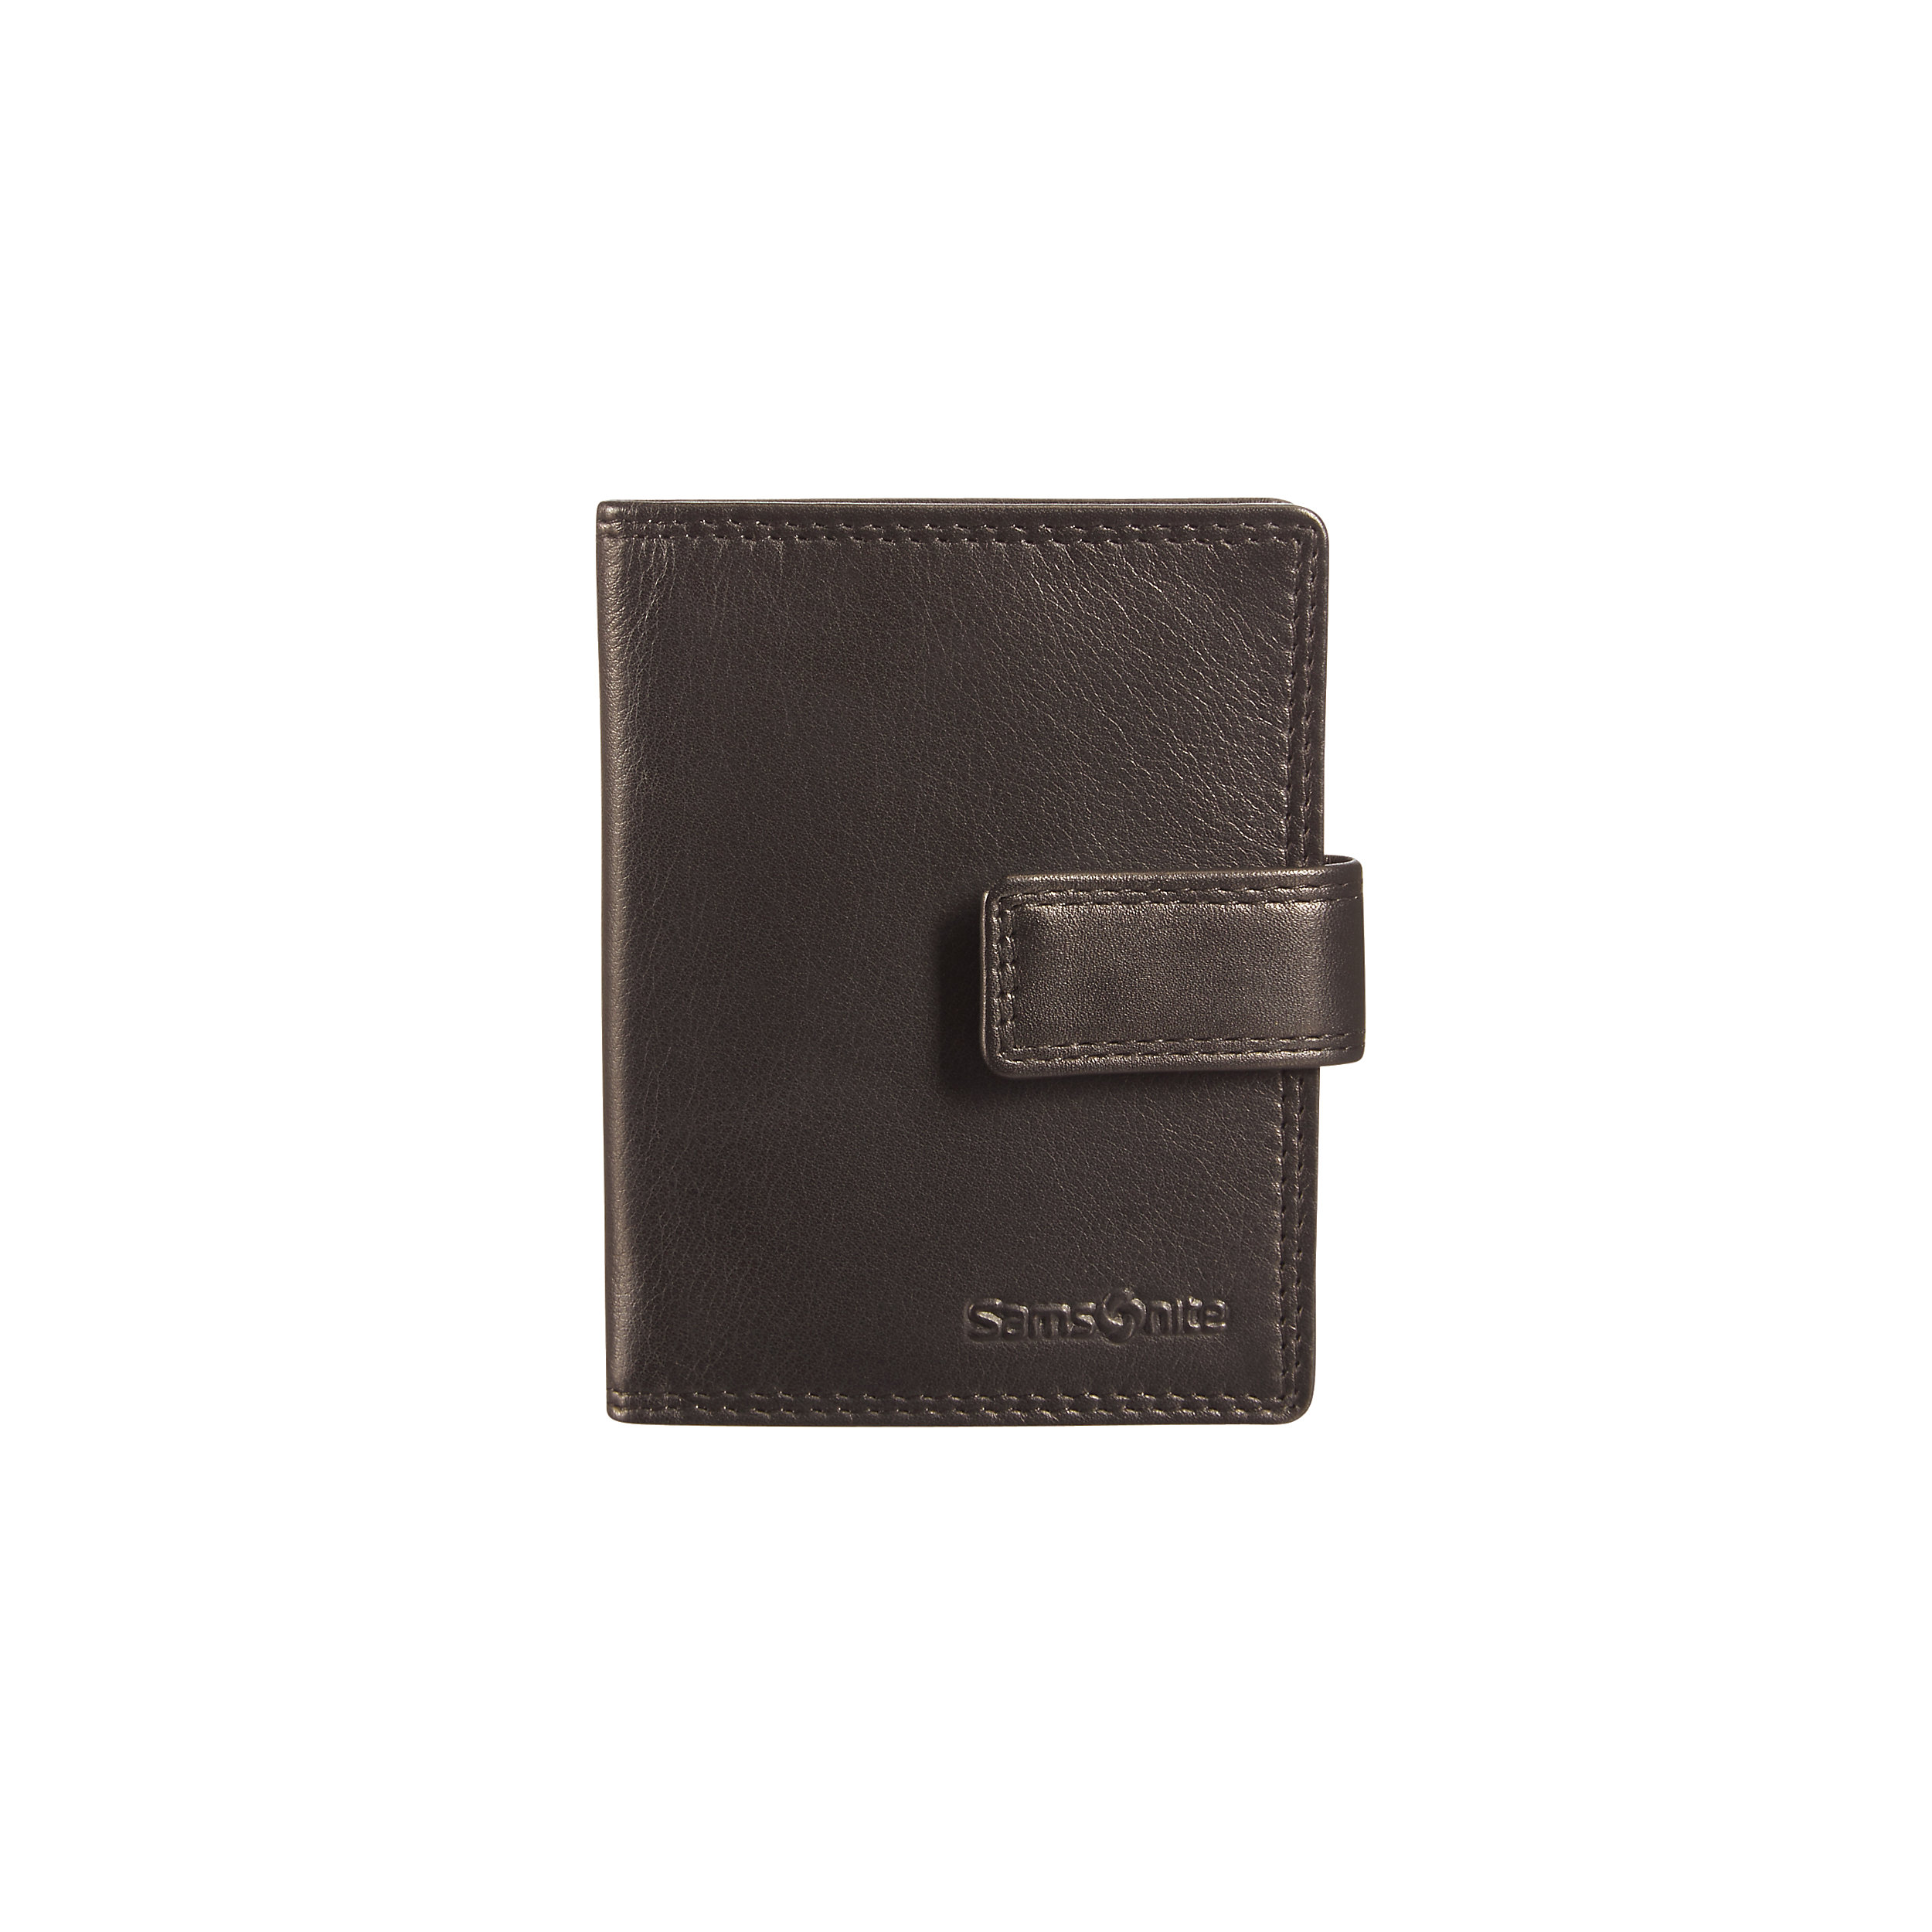 Credit Card Holder 12cc Attack SLG